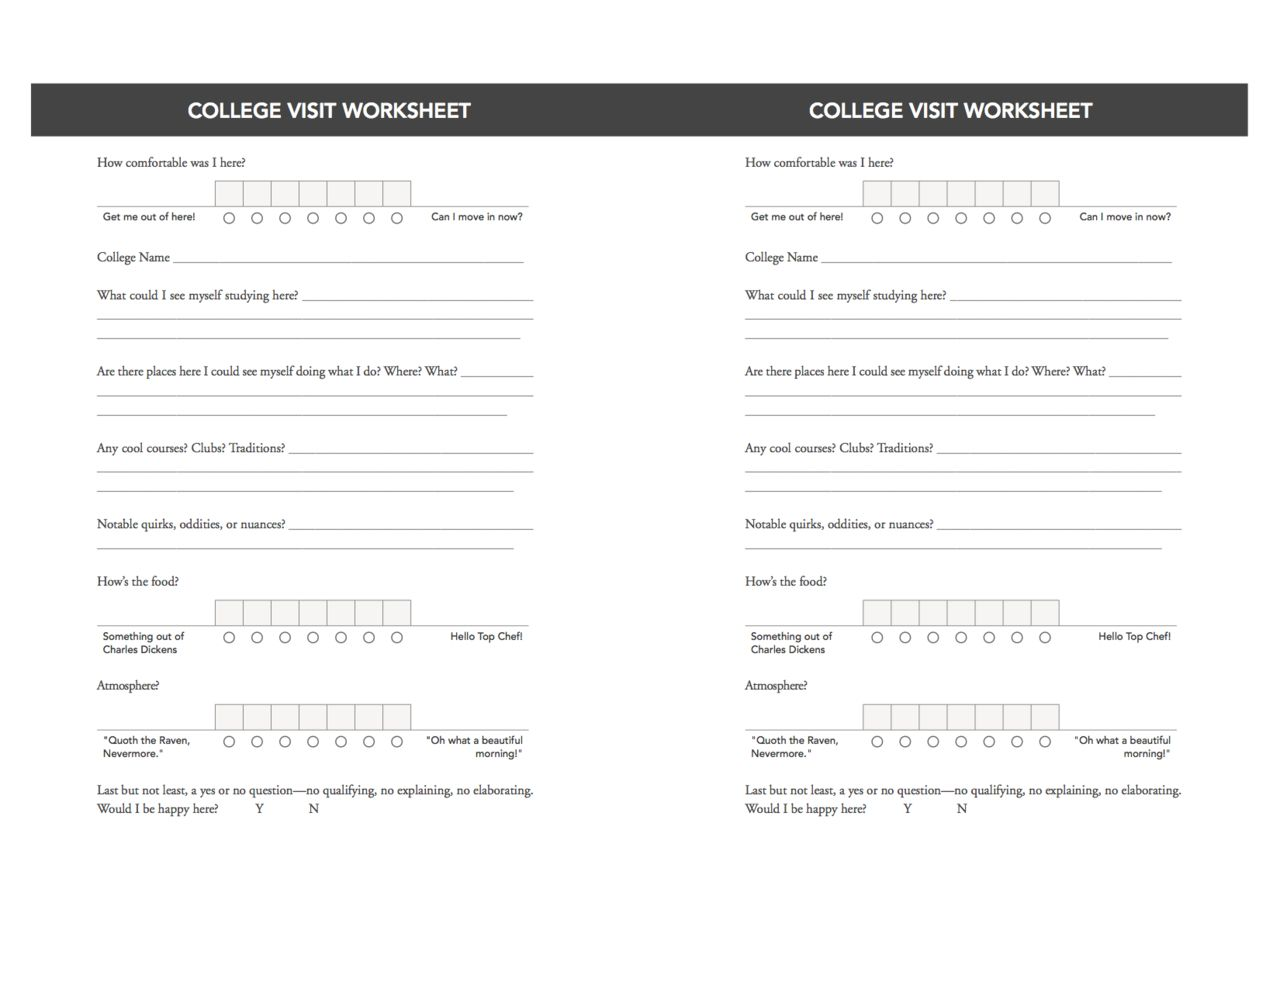 Check Out This College Visit Worksheet And Pick Up A Copy